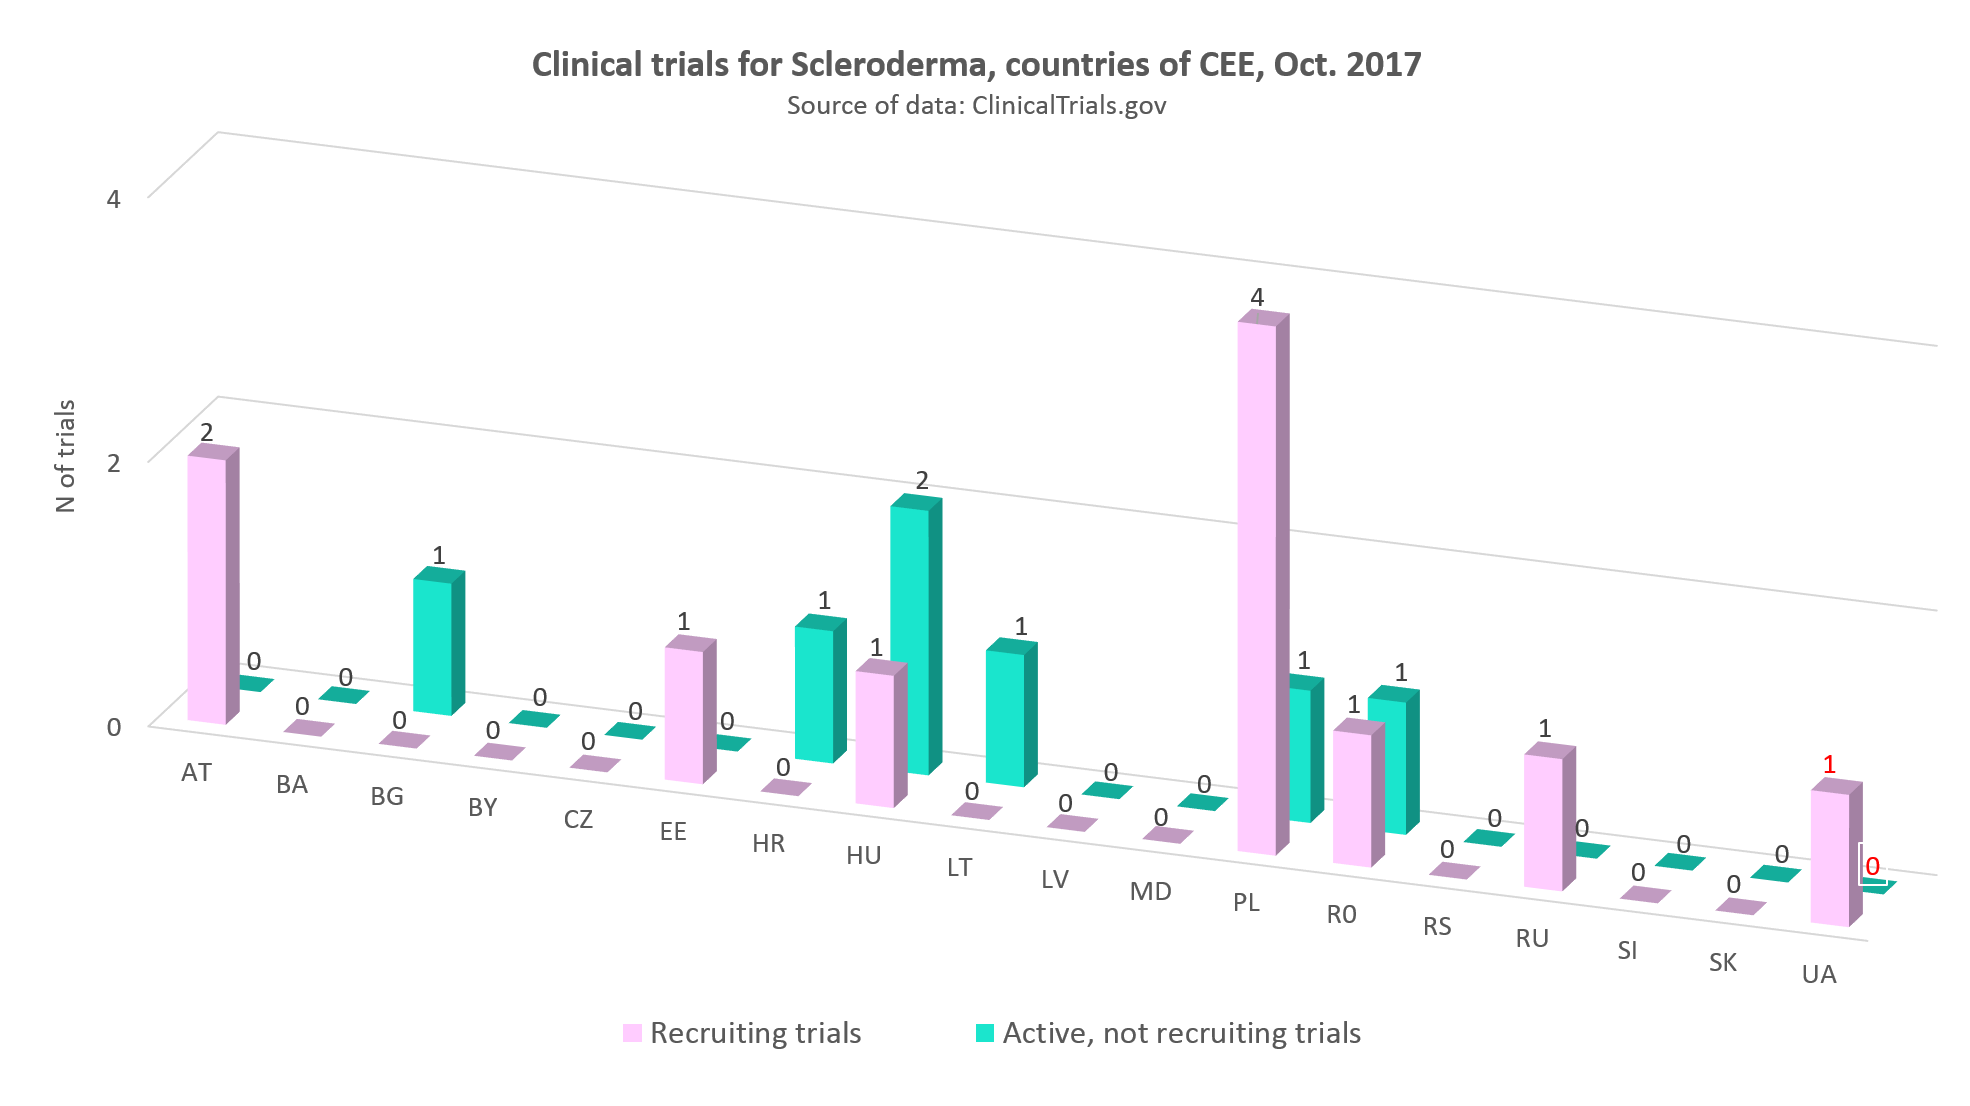 Clinical trials for scleroderma in the countries of CEE, Оctober 2017